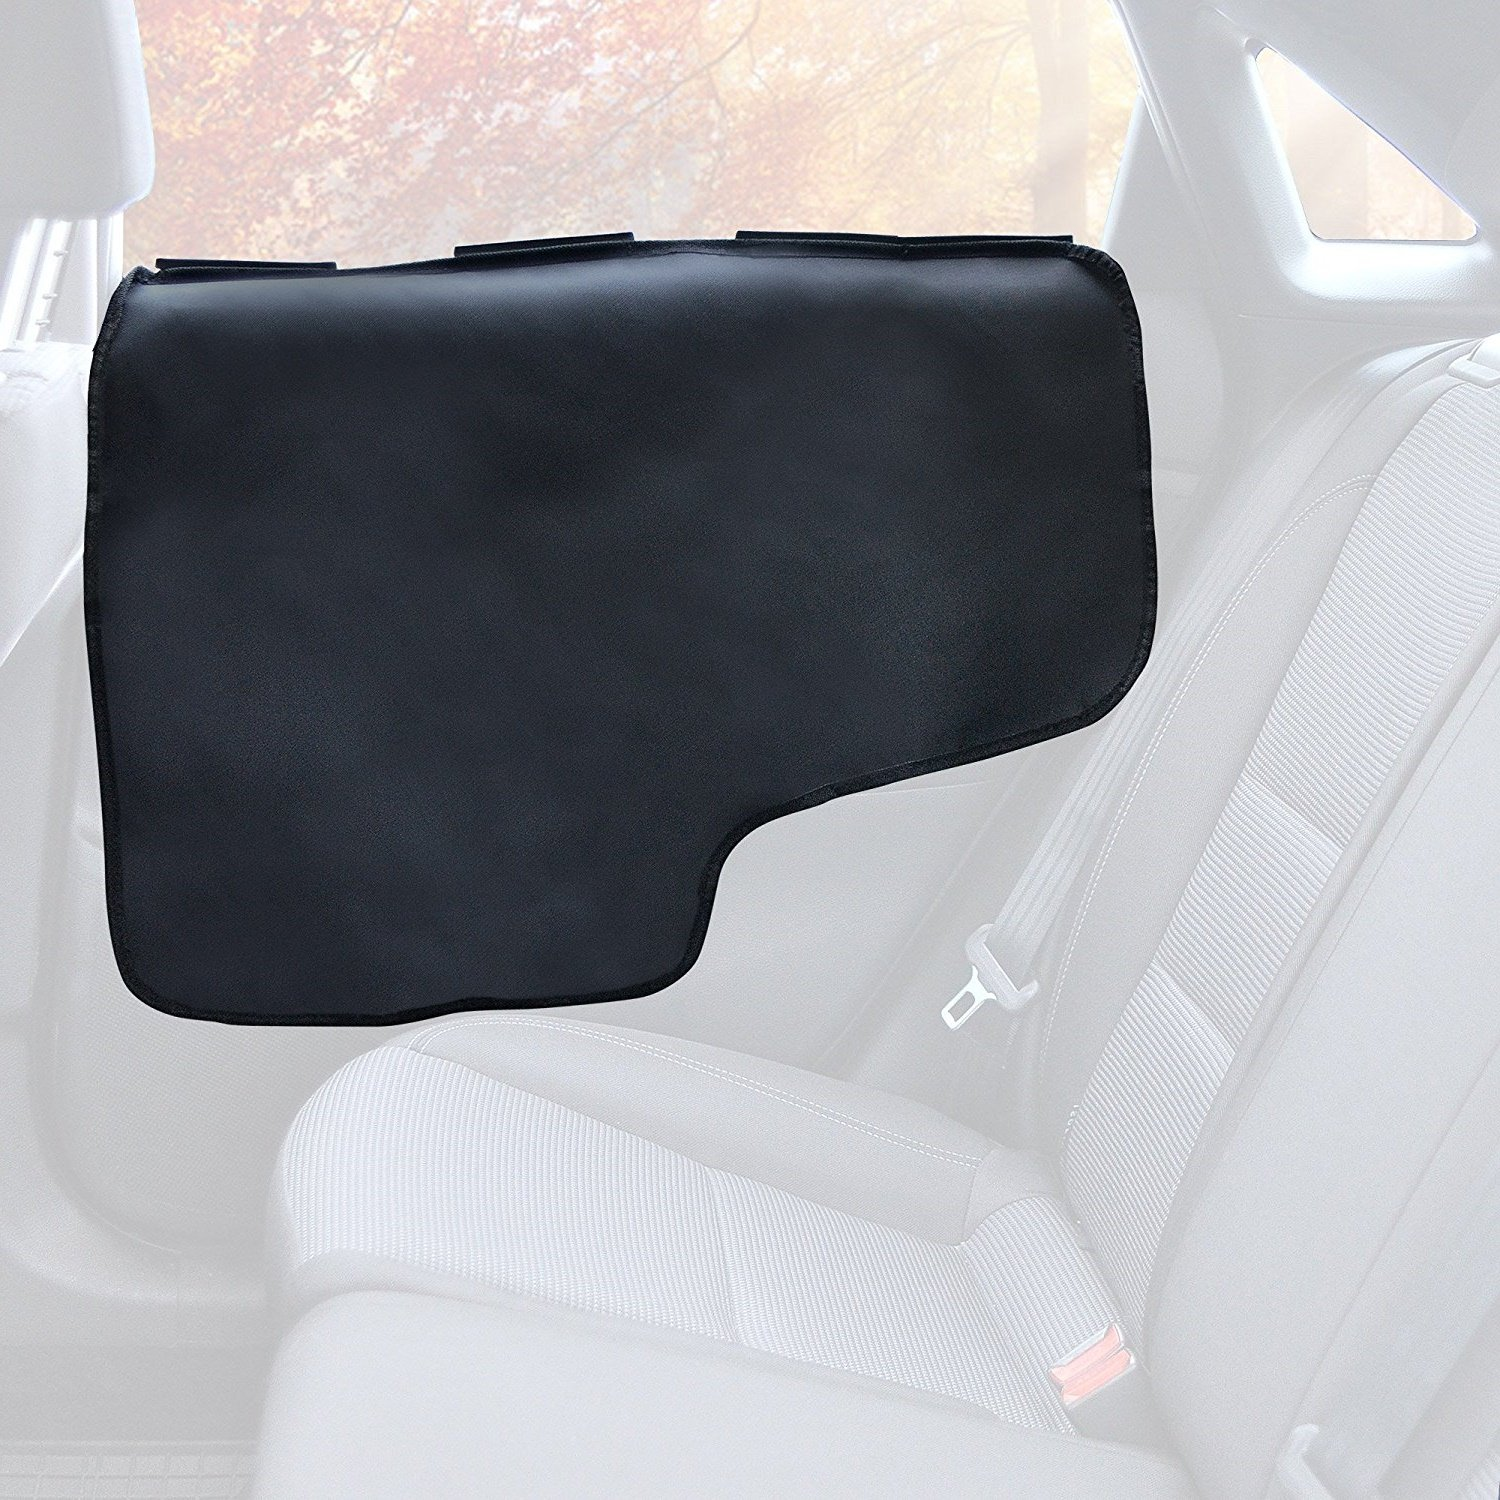 ASOCEA Premium Waterproof Car Door Protector Cover,Protect Car Interior & Doors from Pet Scratches, Hair and Dirt for Cars/Trucks / SUV's(2 Set)